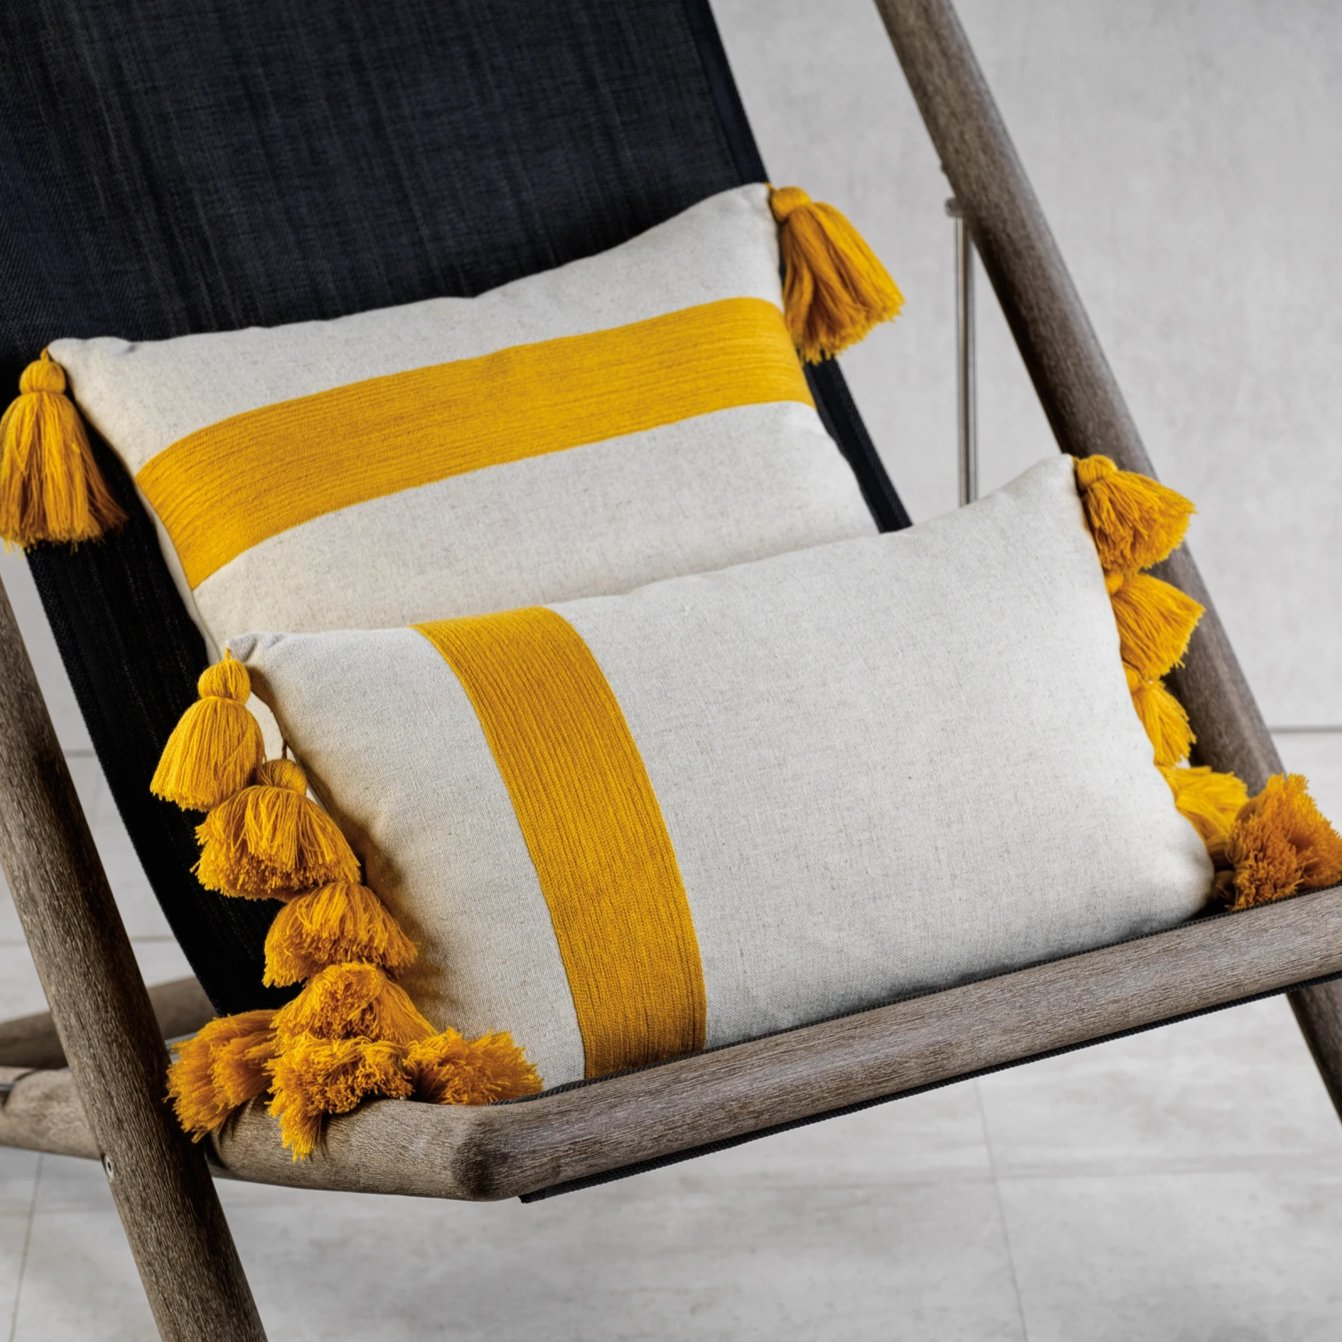 Polignano Embroidered Throw Pillow w/Tassels - Yellow - CARLYLE AVENUE